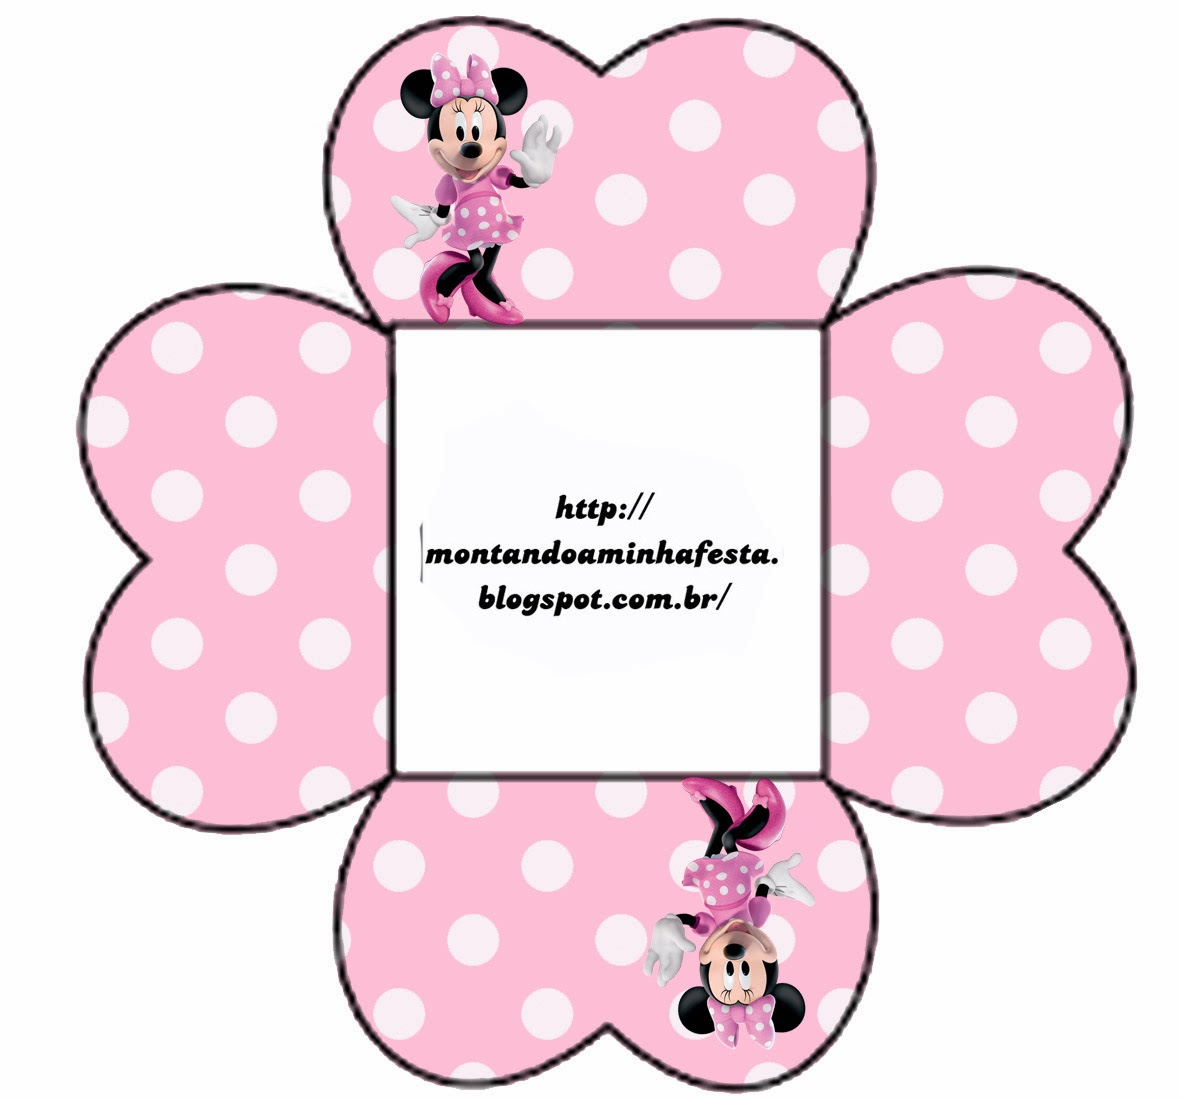 Caja Gratis de Minnie para pastelitos, chocolates o mazapanes.